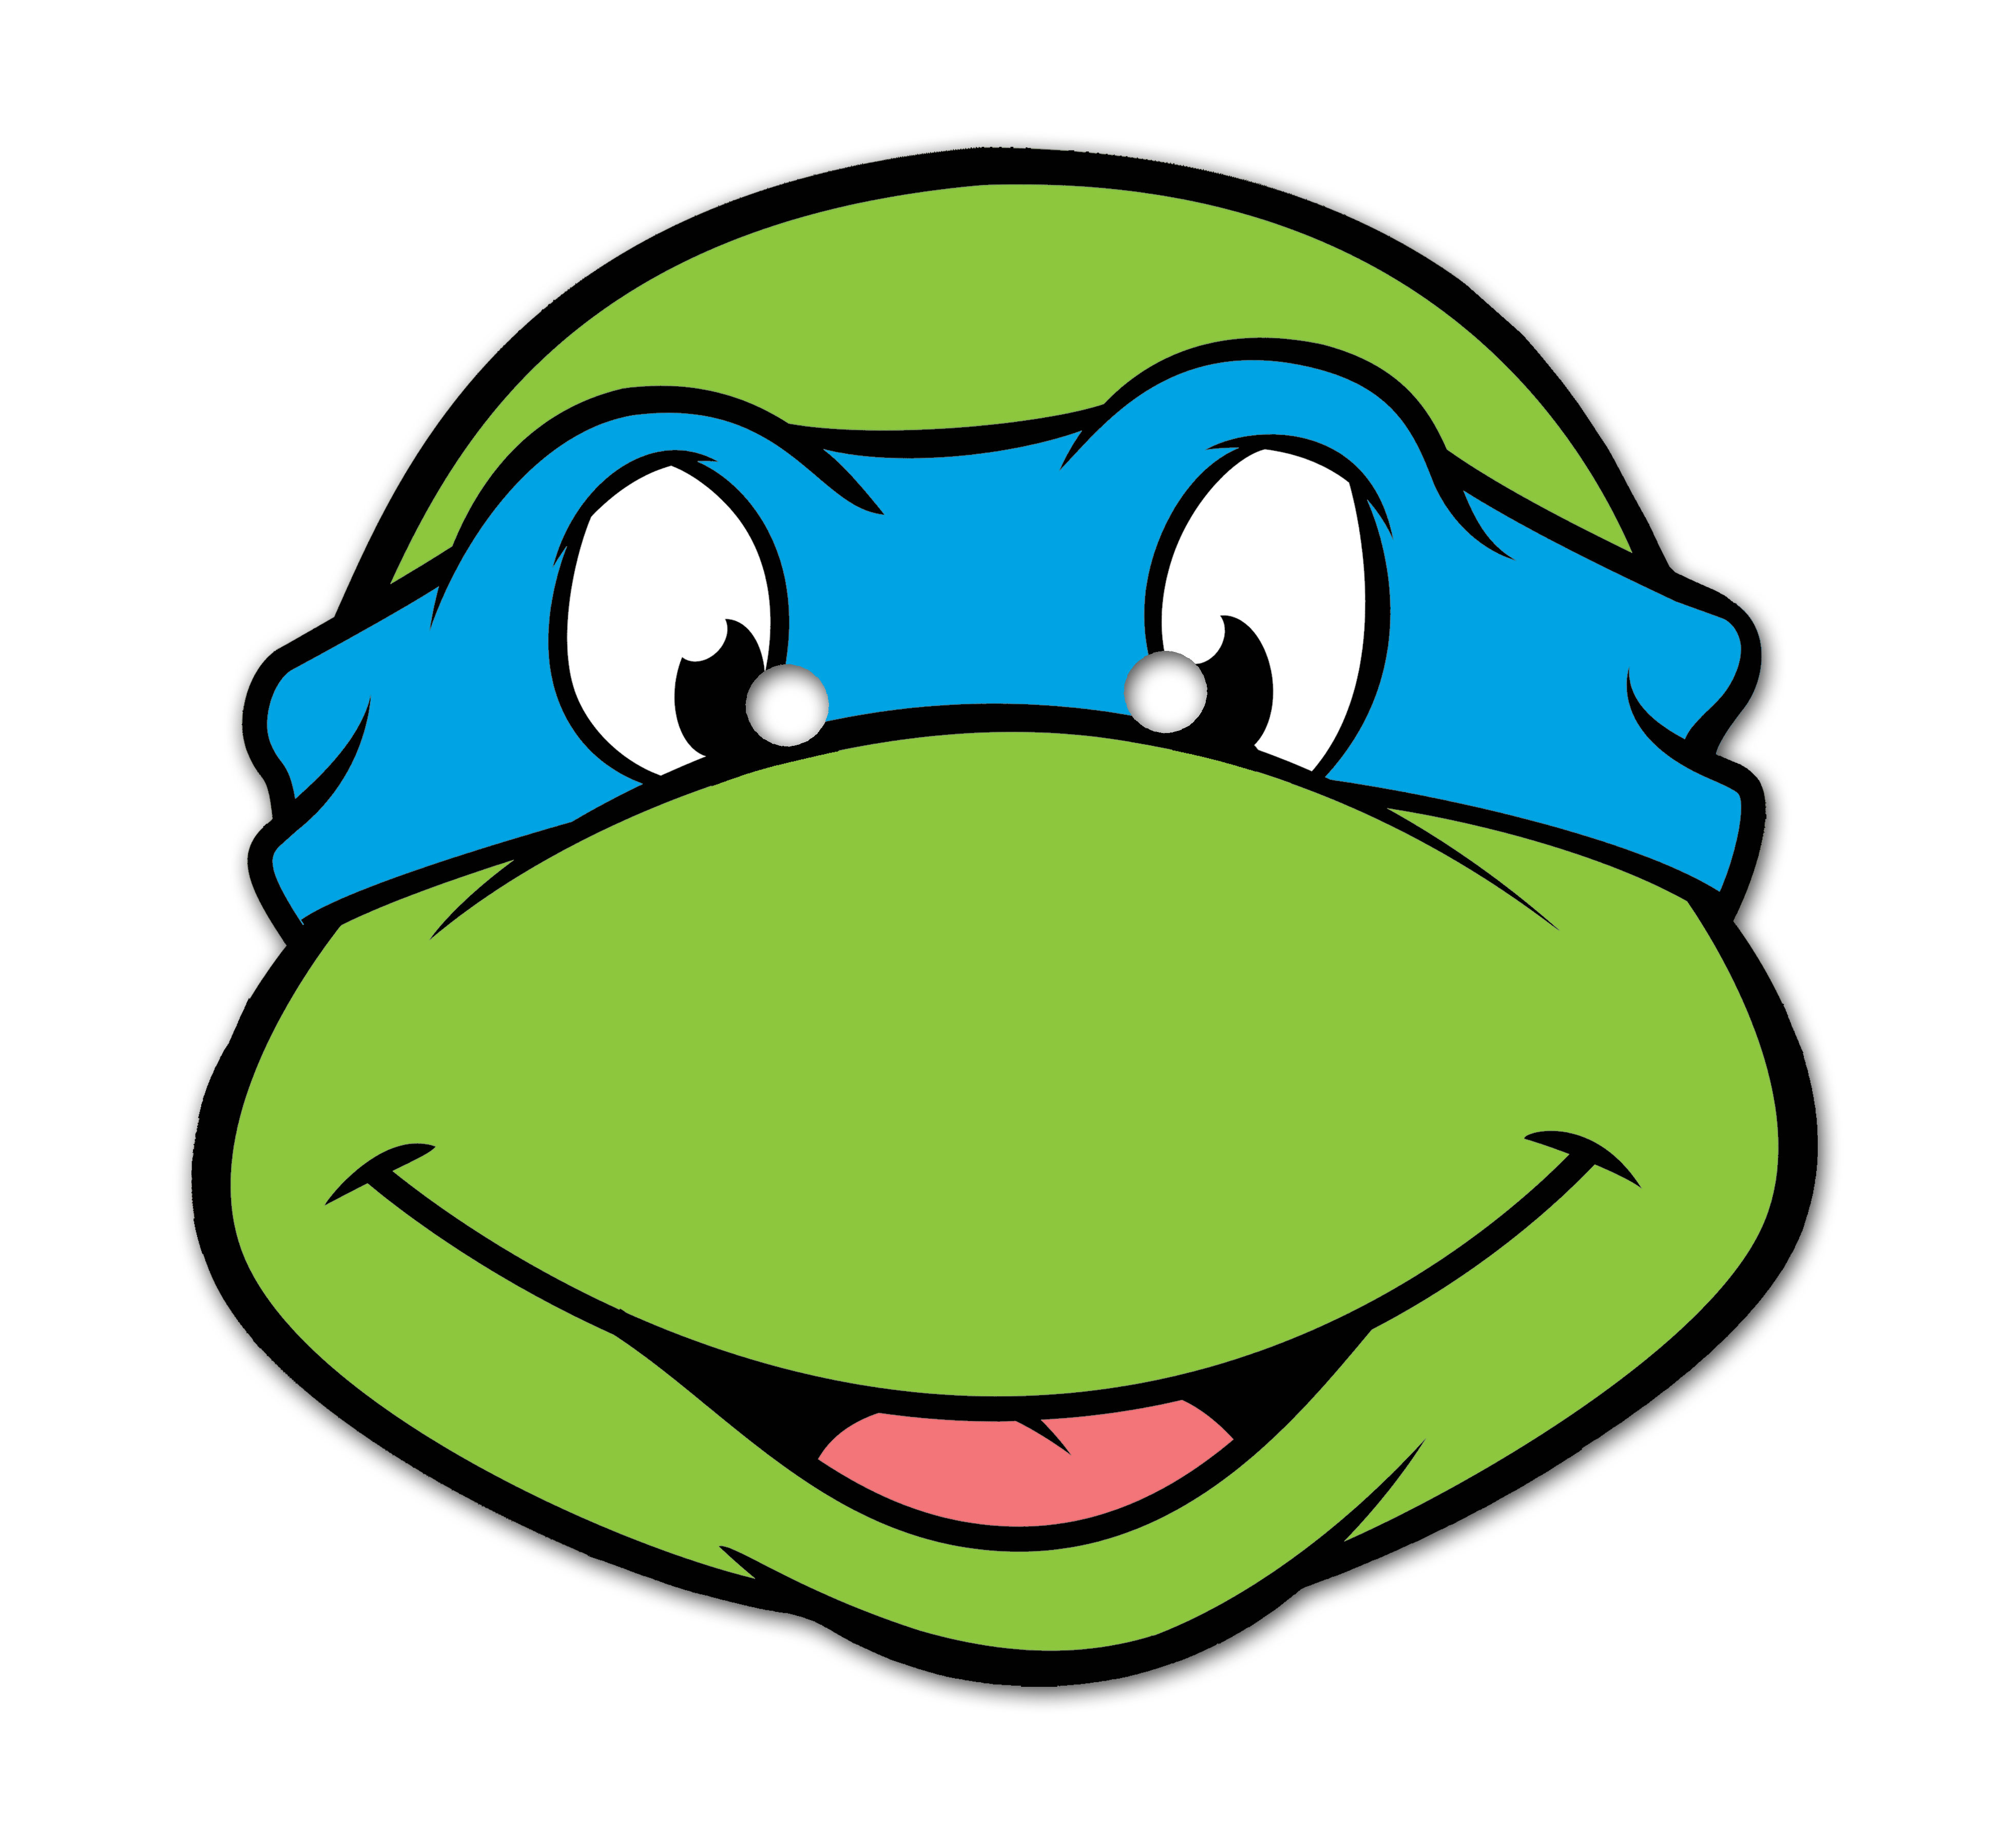 3900x3600 Collection Of Teenage Mutant Ninja Turtles Faces Clipart